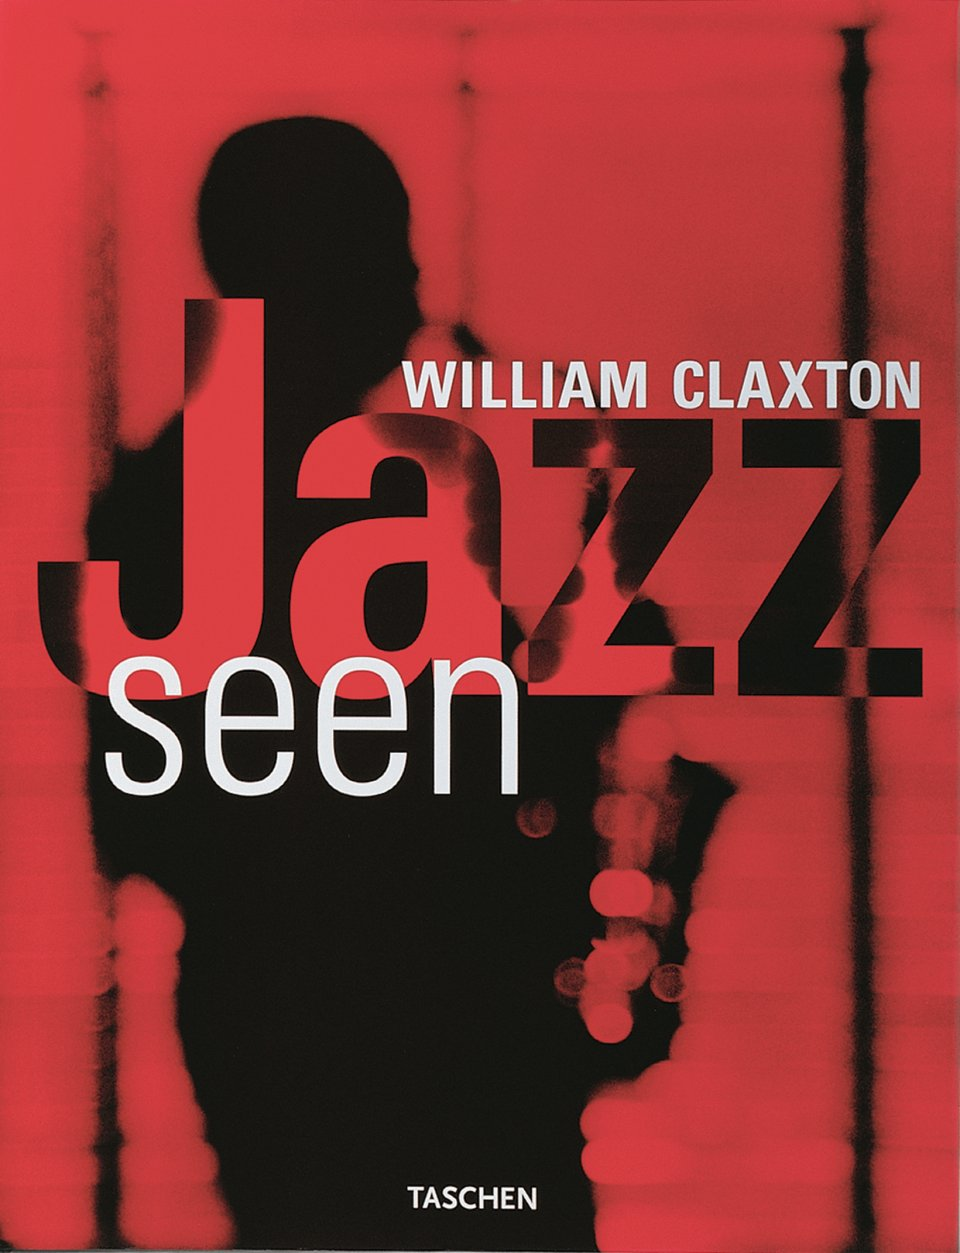 Jazz seen signé William Claxton. Éditions TASCHEN